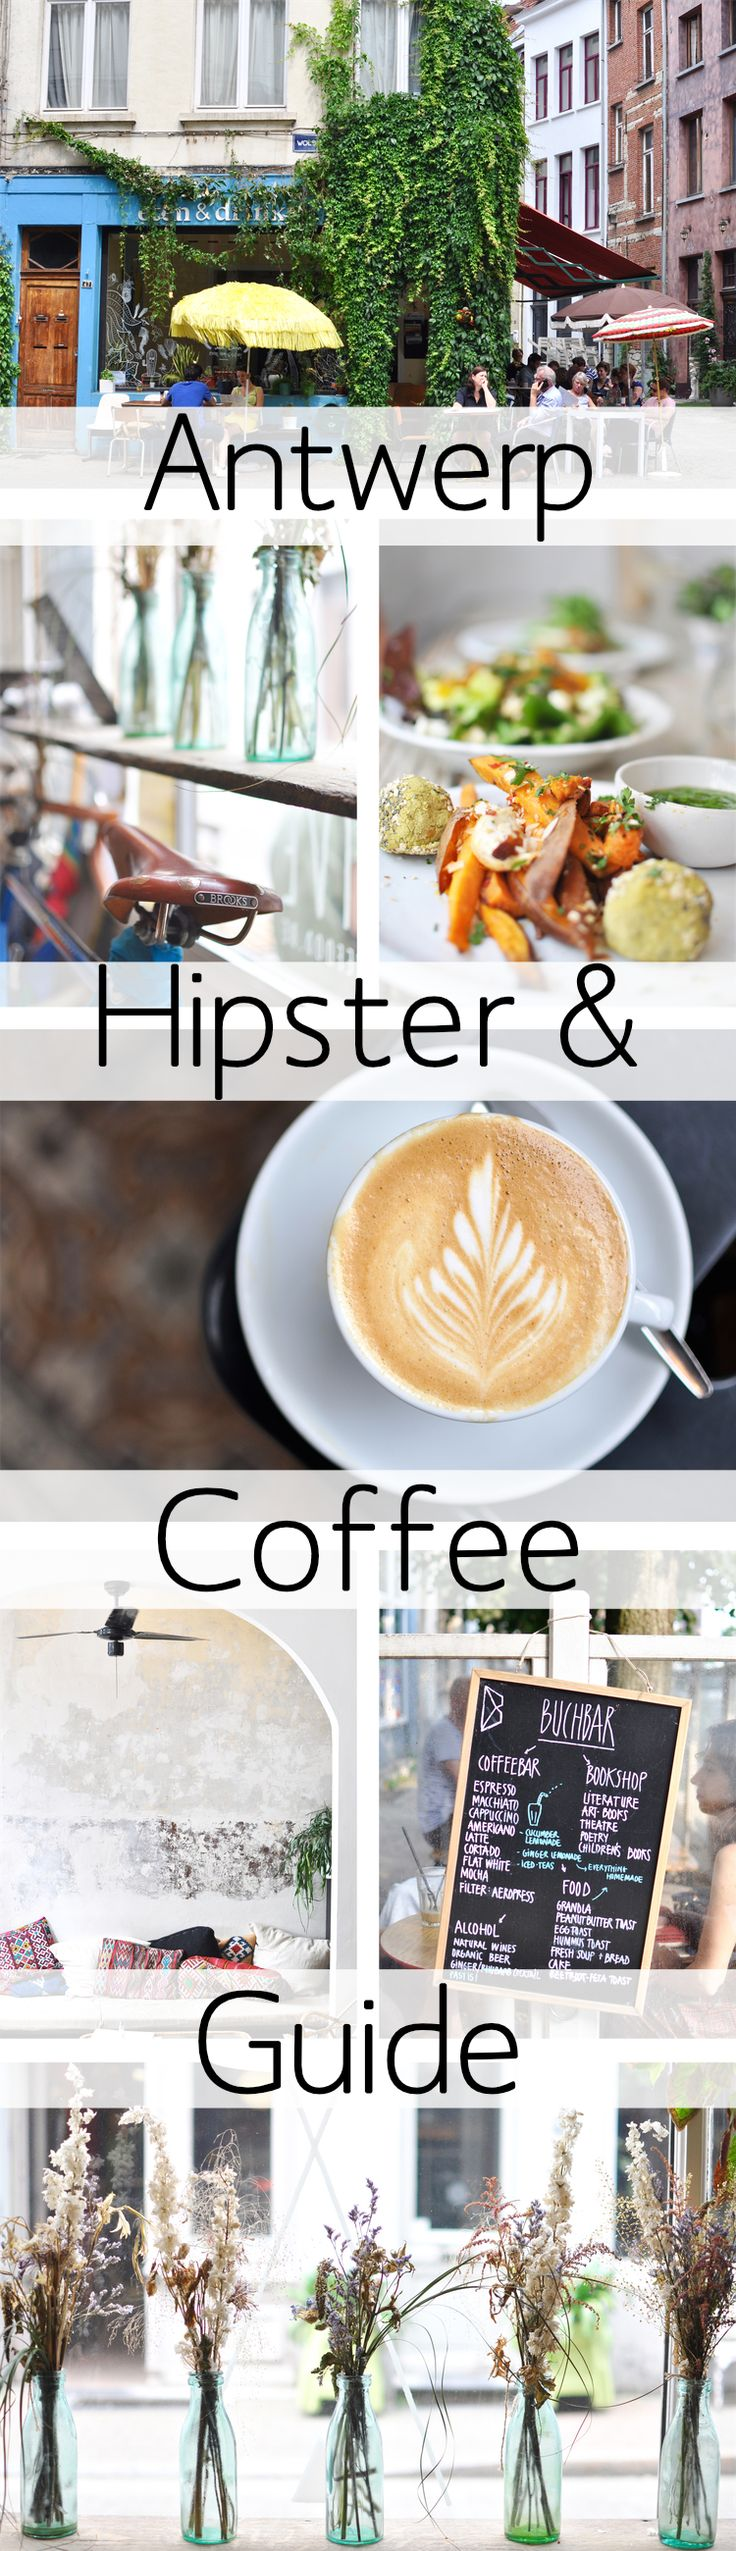 Antwerp Coffee Guide